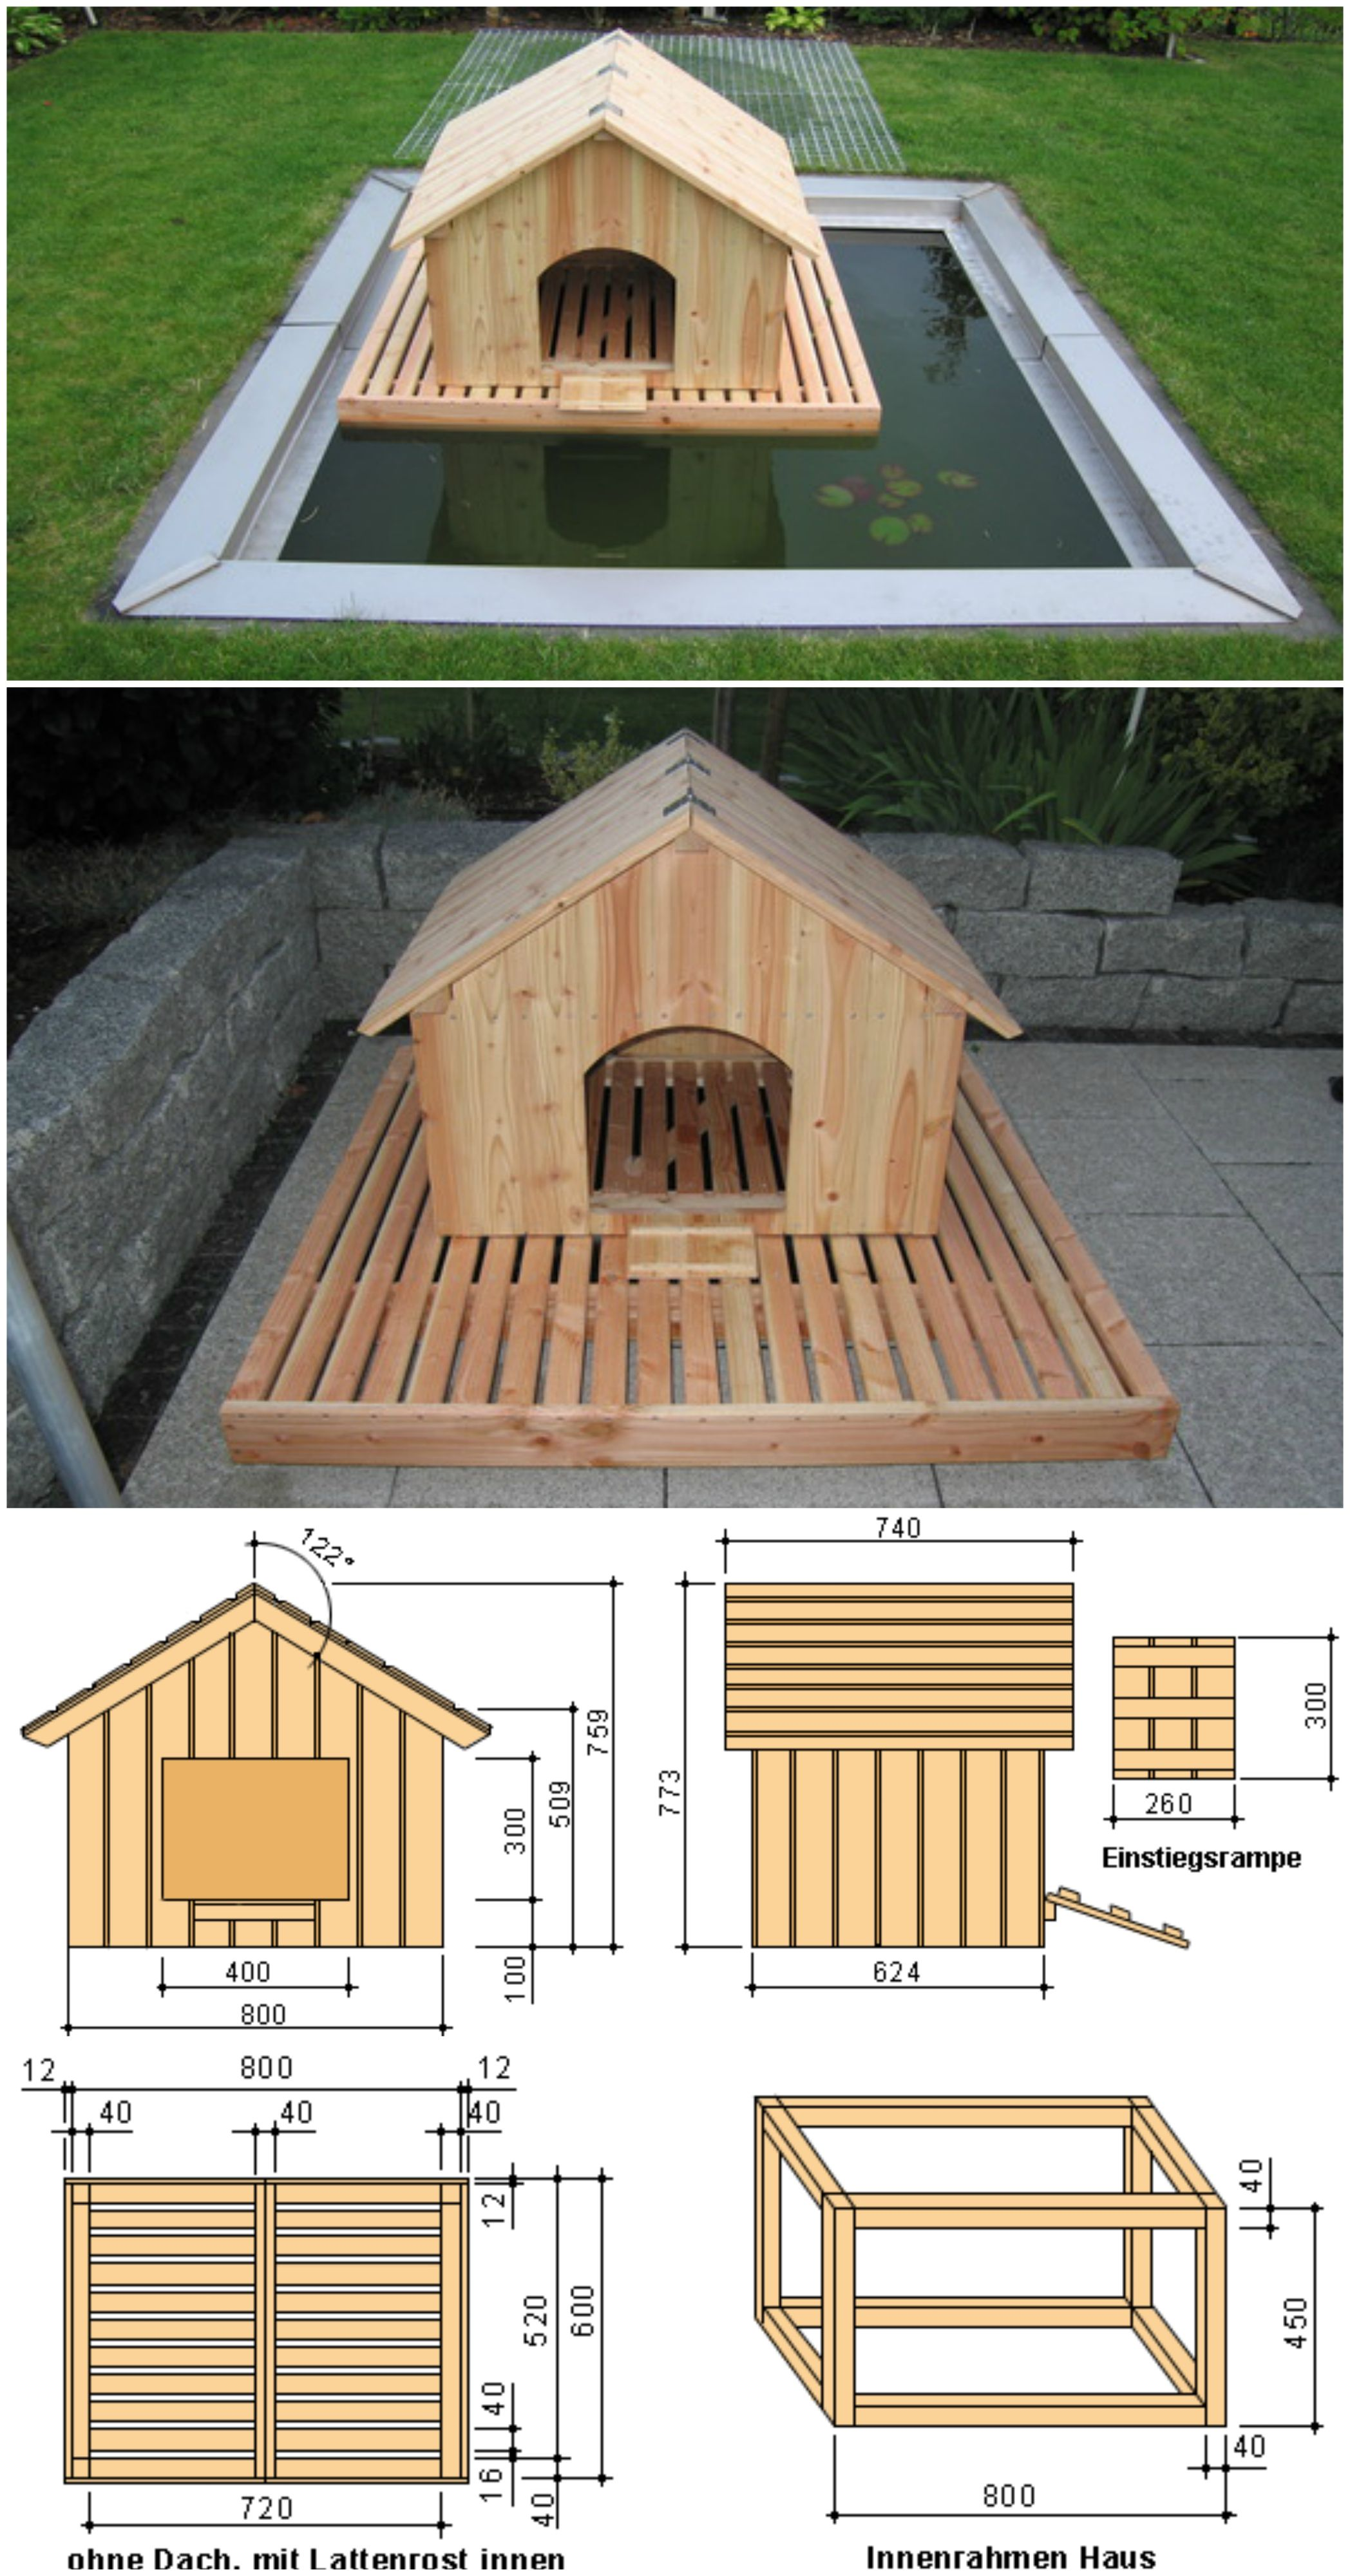 How To Build A Floating Duck House Ducks Duck House